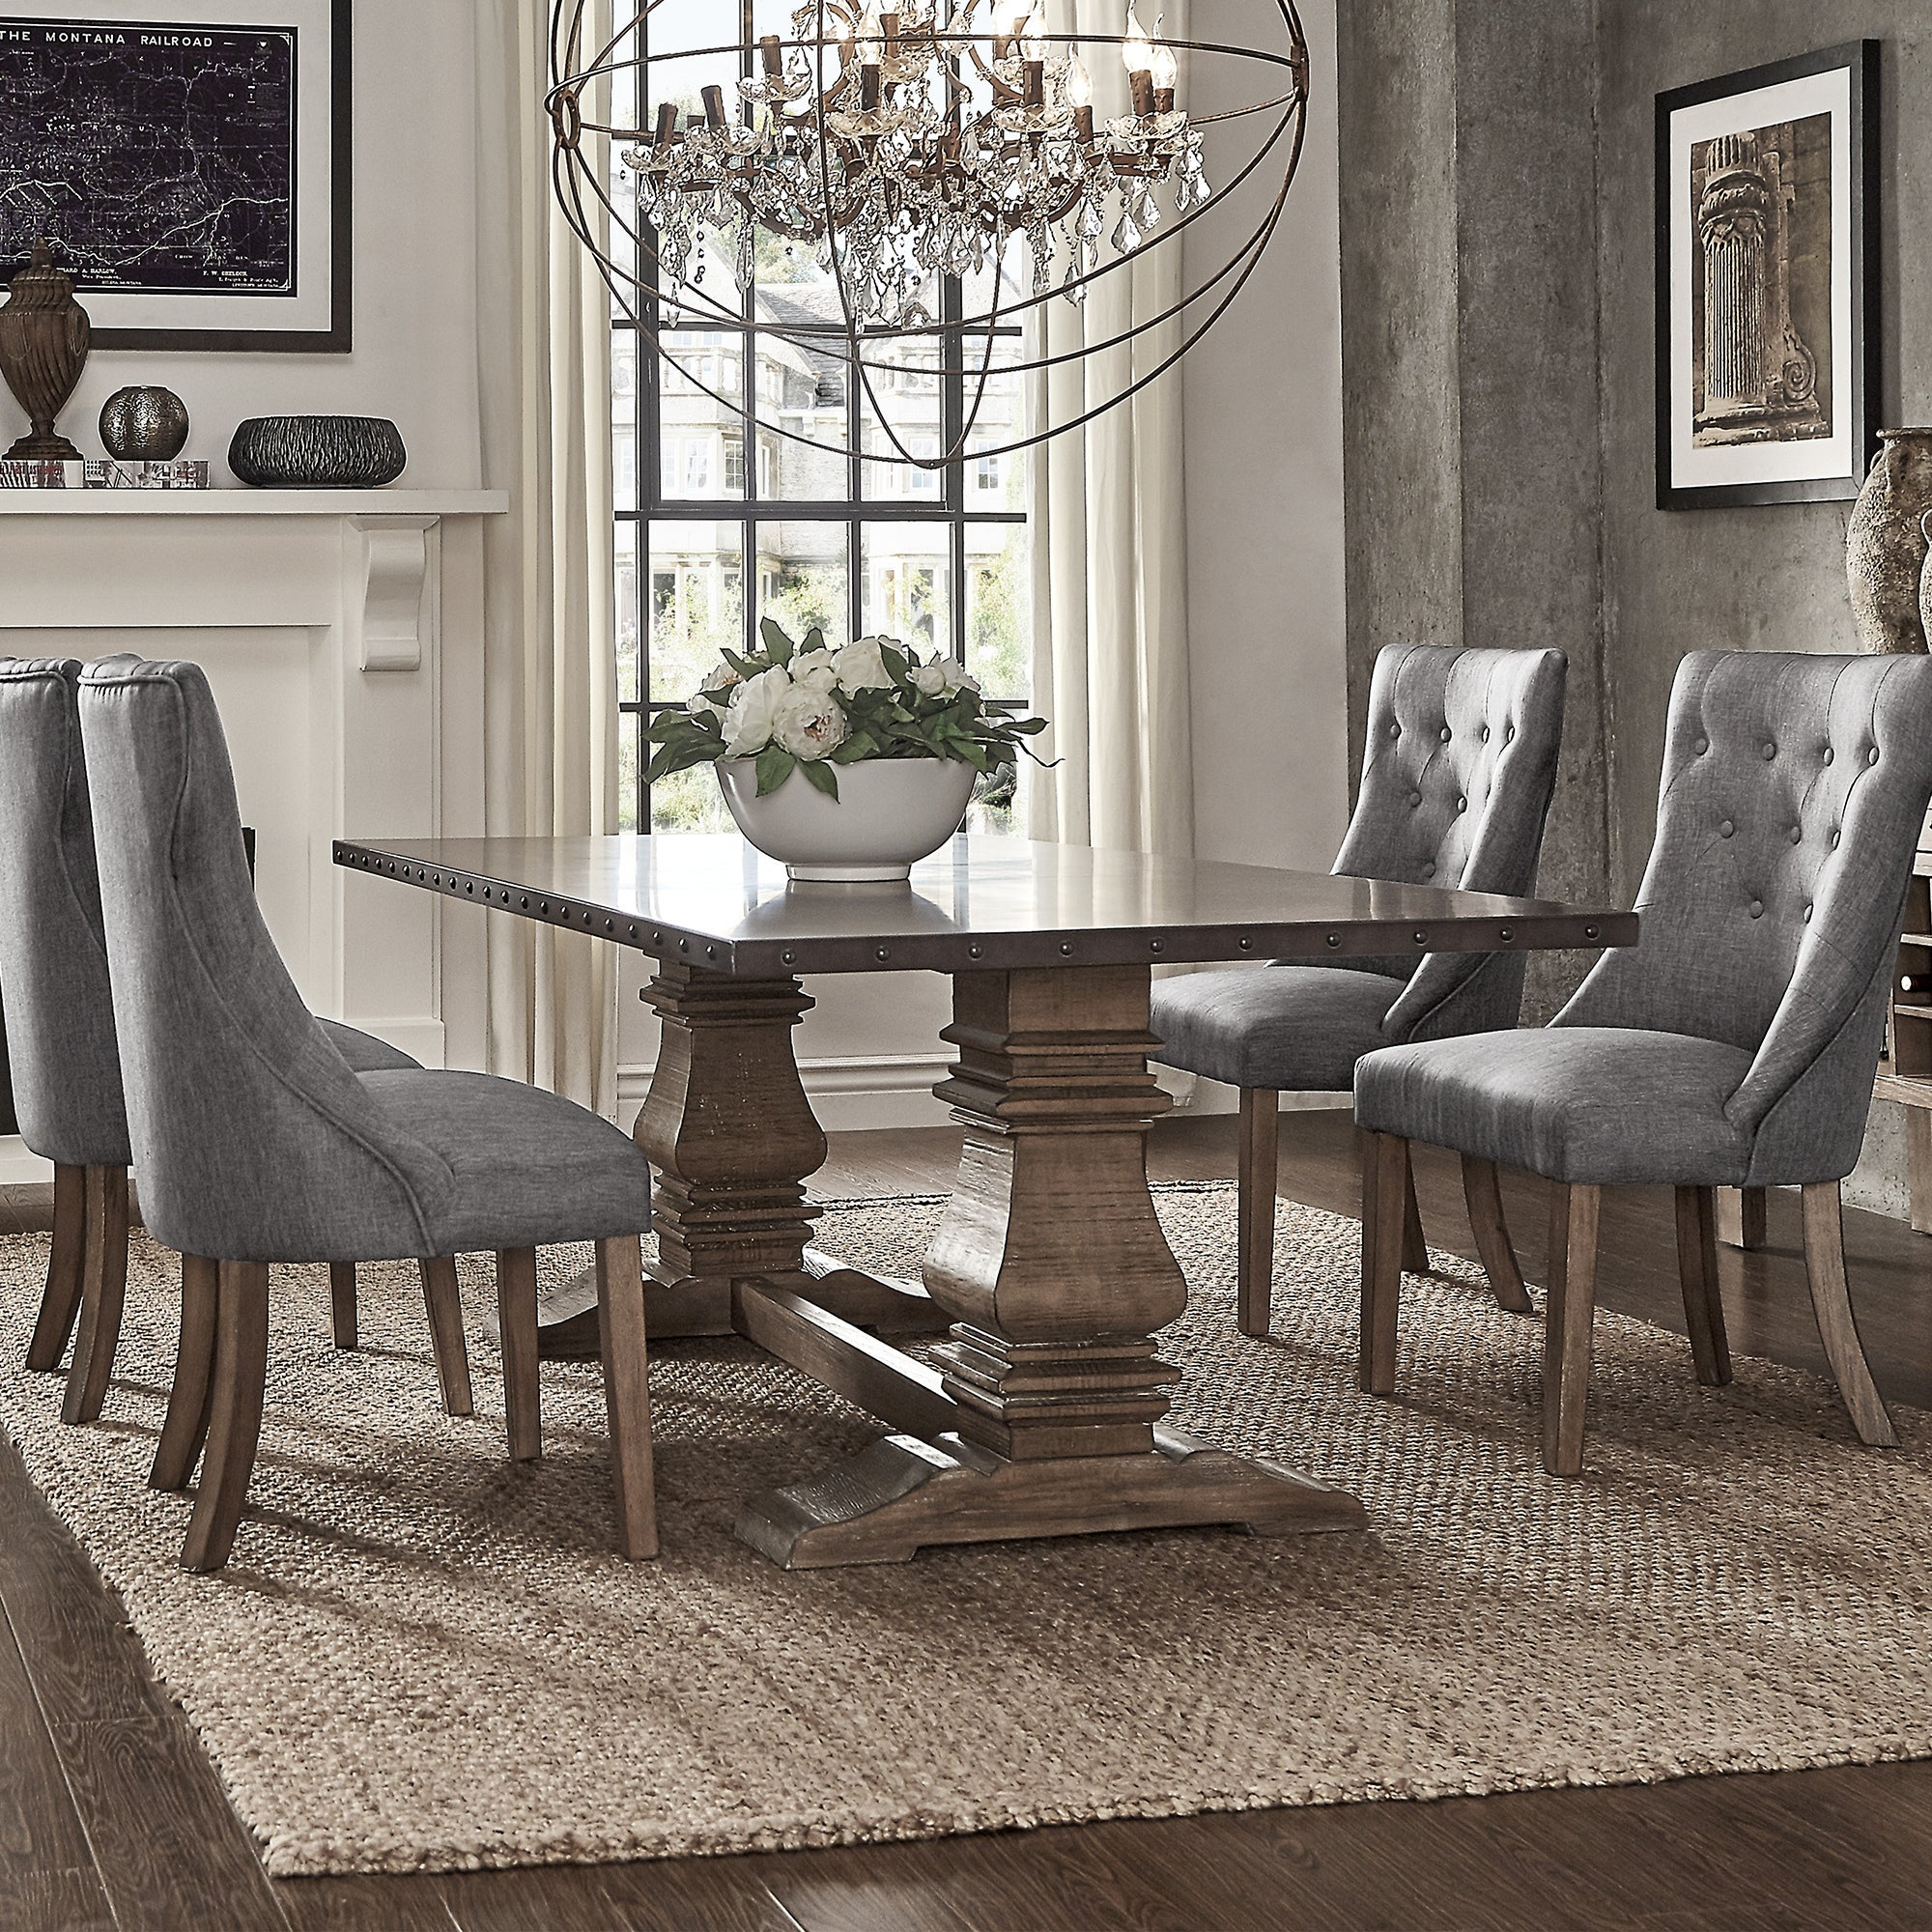 Shop Janelle Extended Rustic Zinc Dining Set With Tufted Chairs By INSPIRE Q Artisan